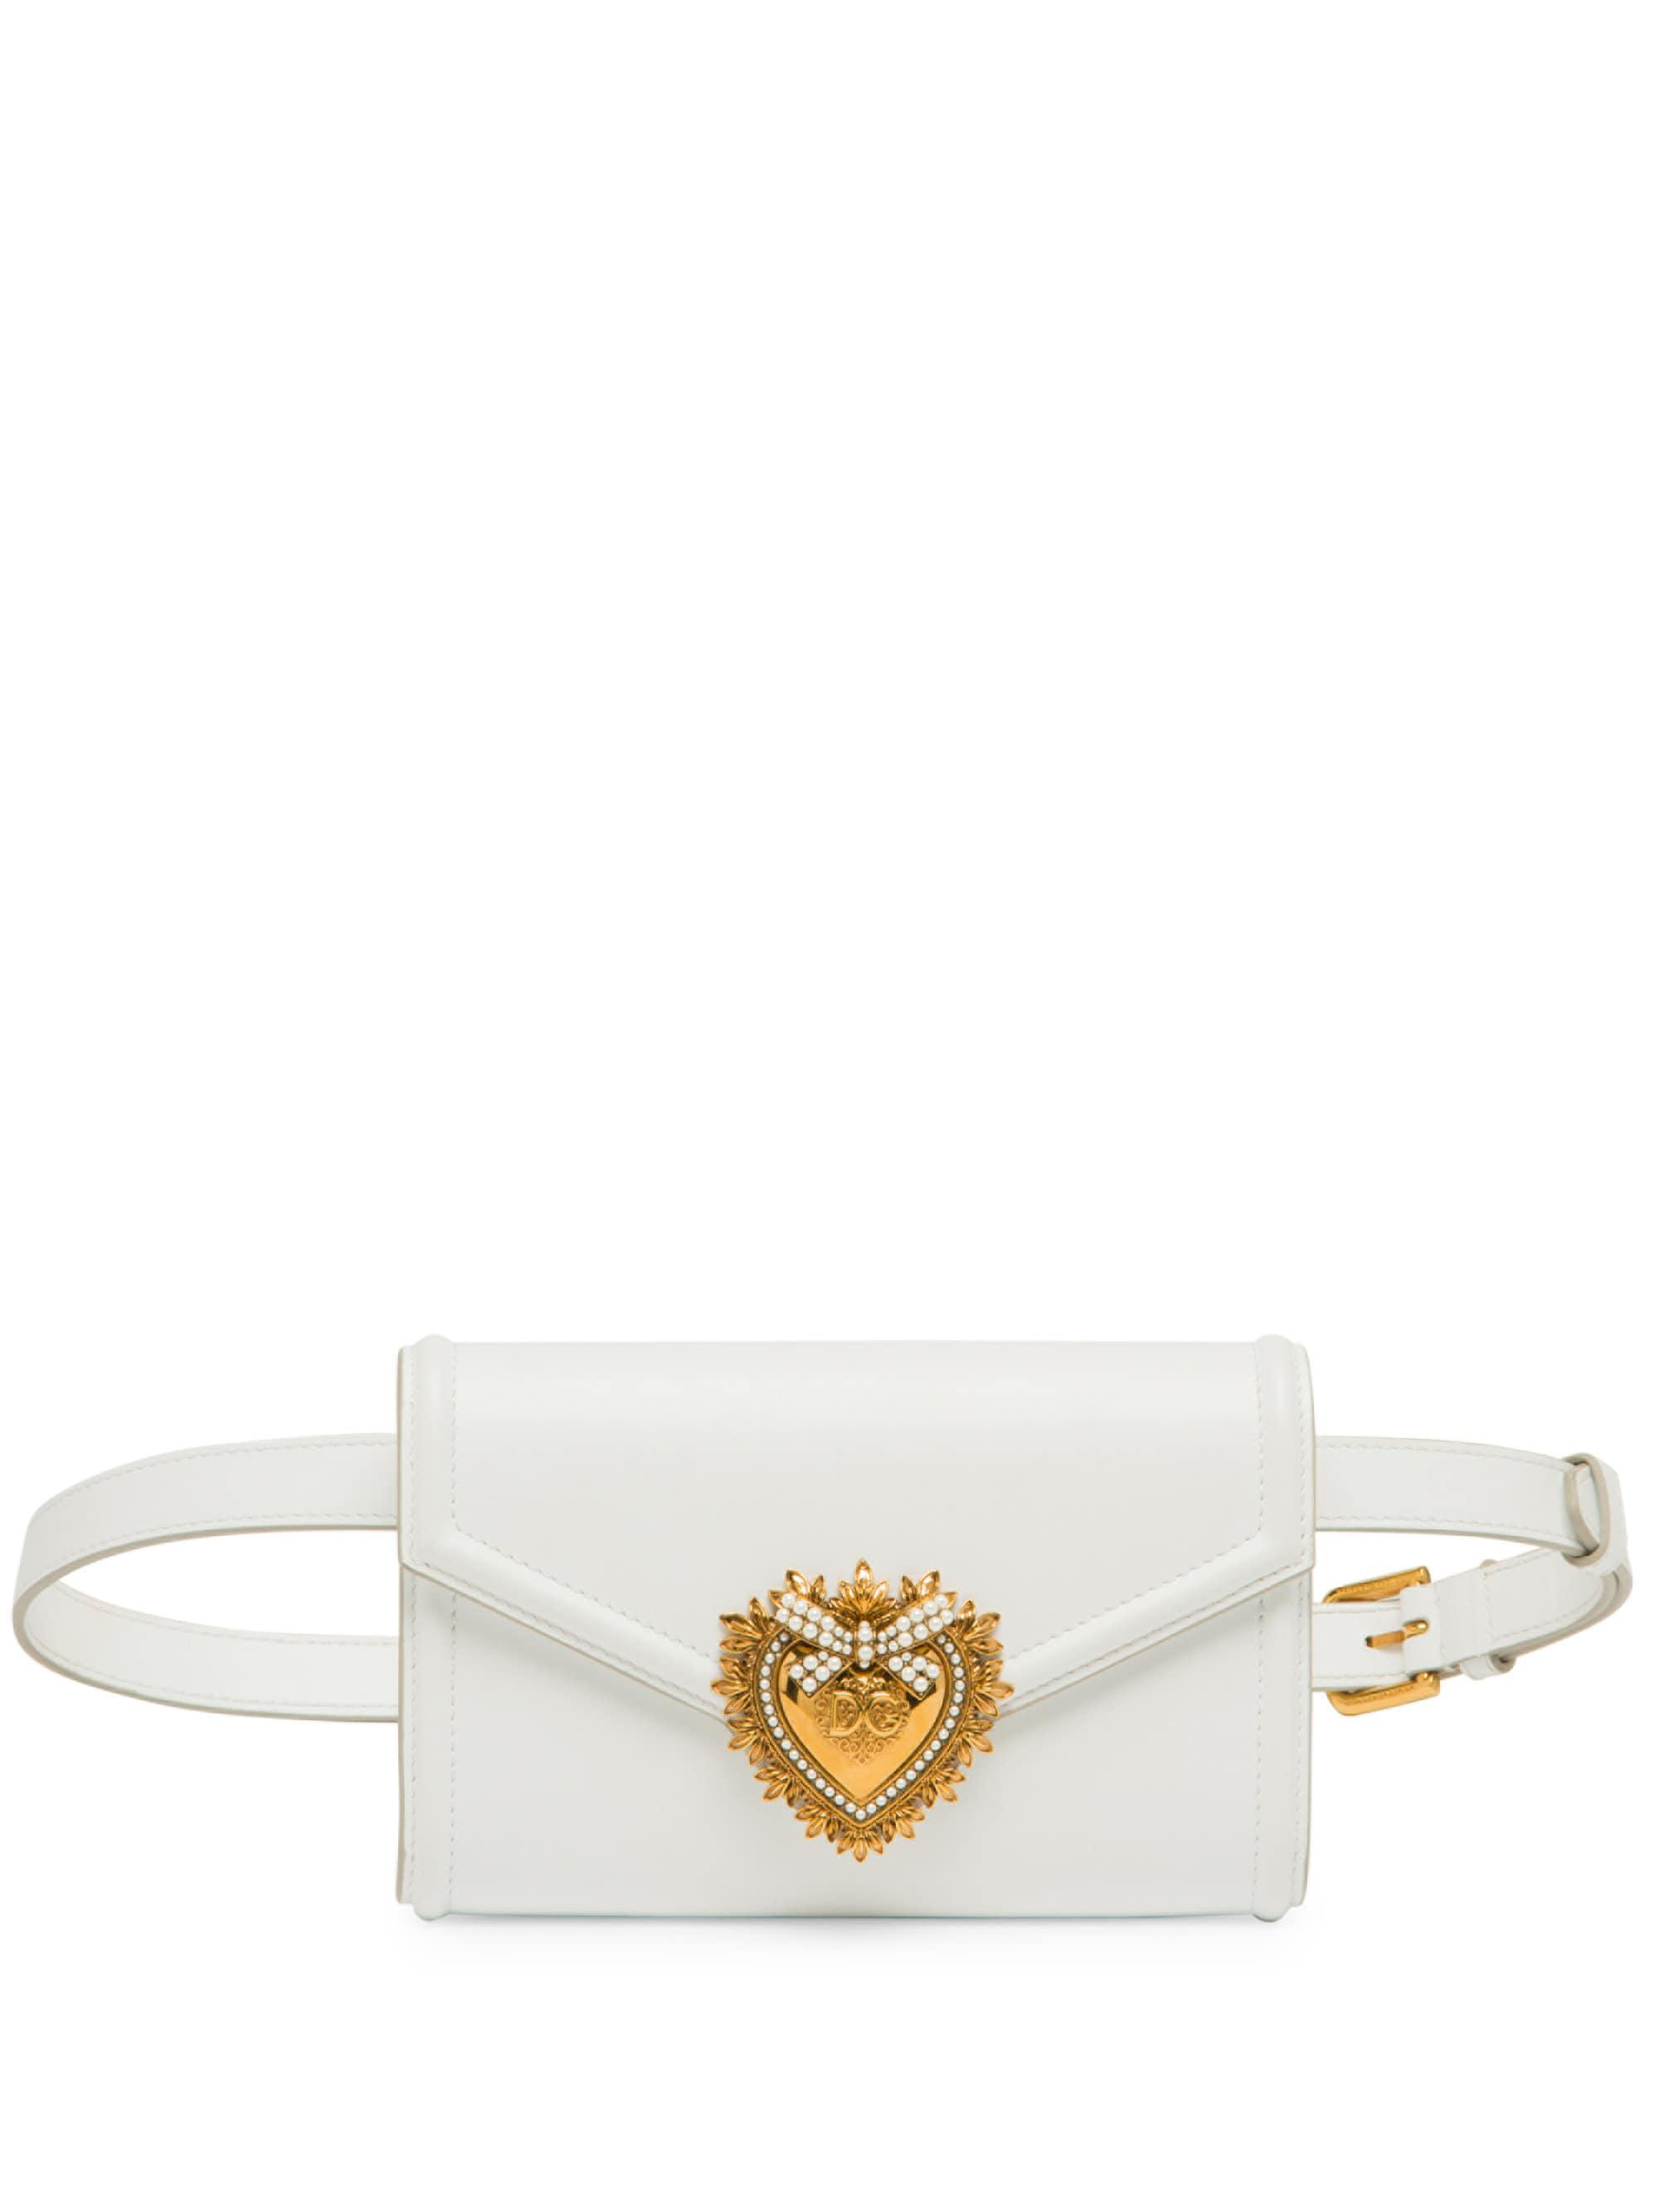 4ddfcbc5f09 Dolce & Gabbana White Devotion Leather Belt Bag